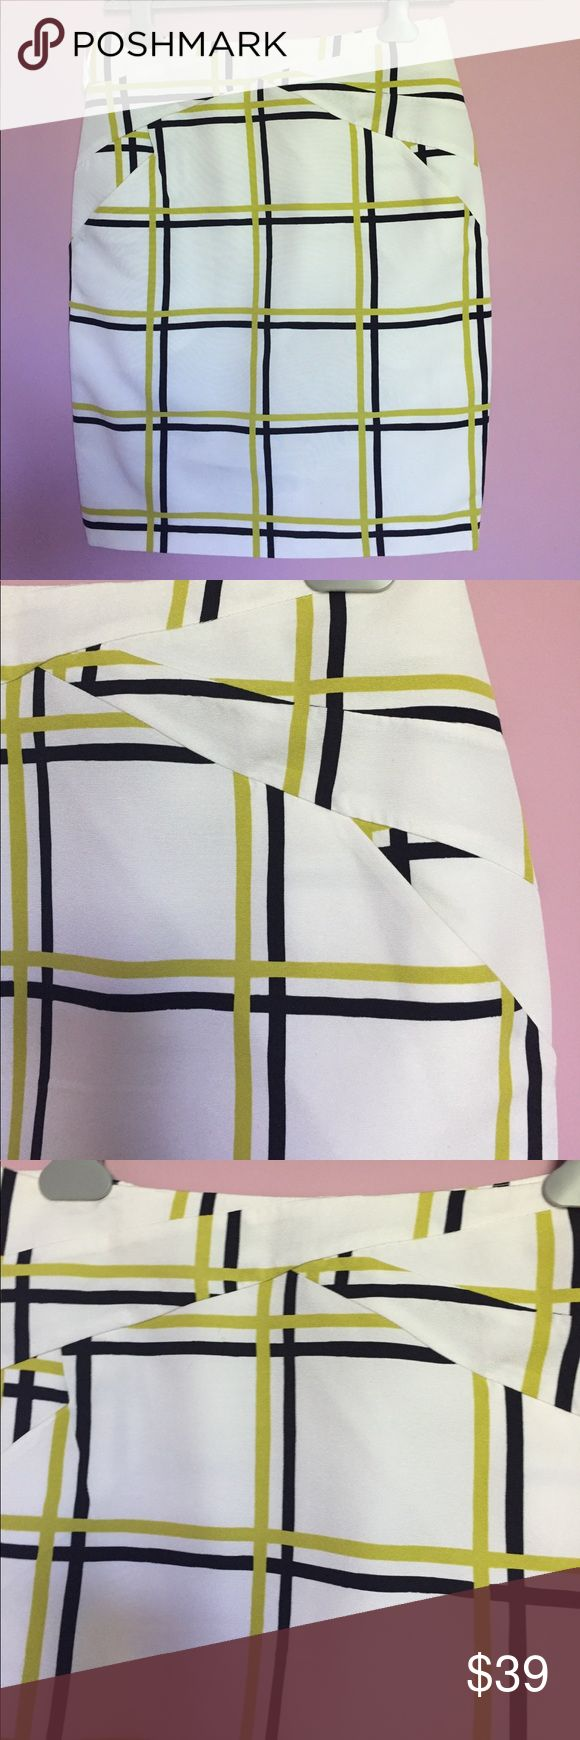 Reiss skirt Reiss pencil skirt white with green and navy stripes.  Back vent and back zipper - super styling in the seams that is a hallmark of Reiss designs. Reiss Skirts Pencil